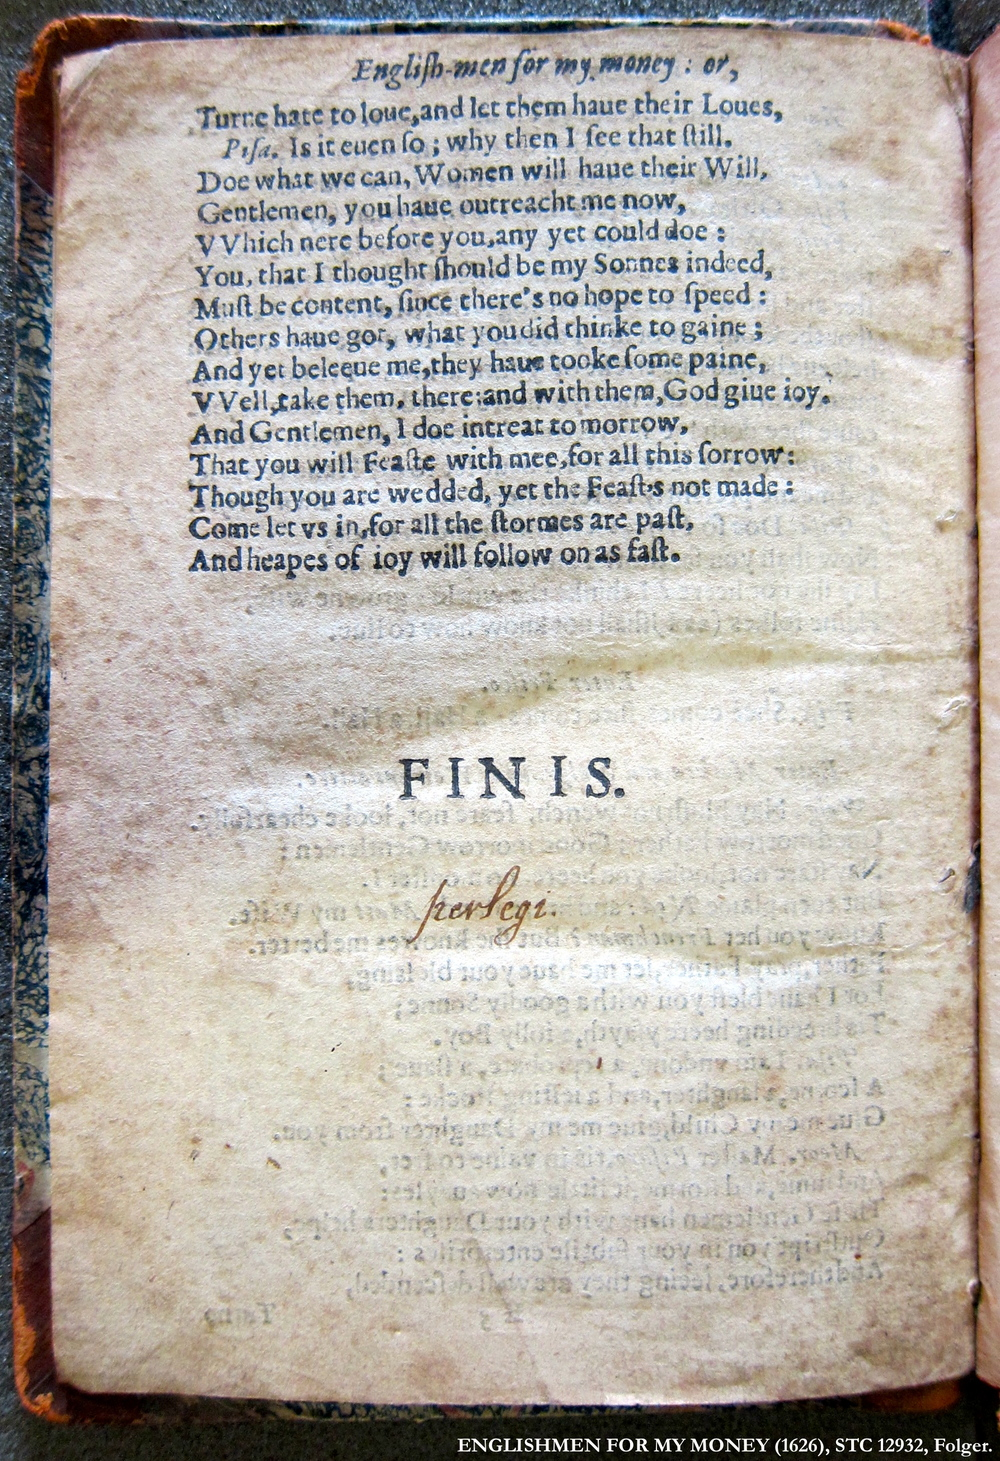 Englishmen for My Money  (1626), STC 12932, Folger.